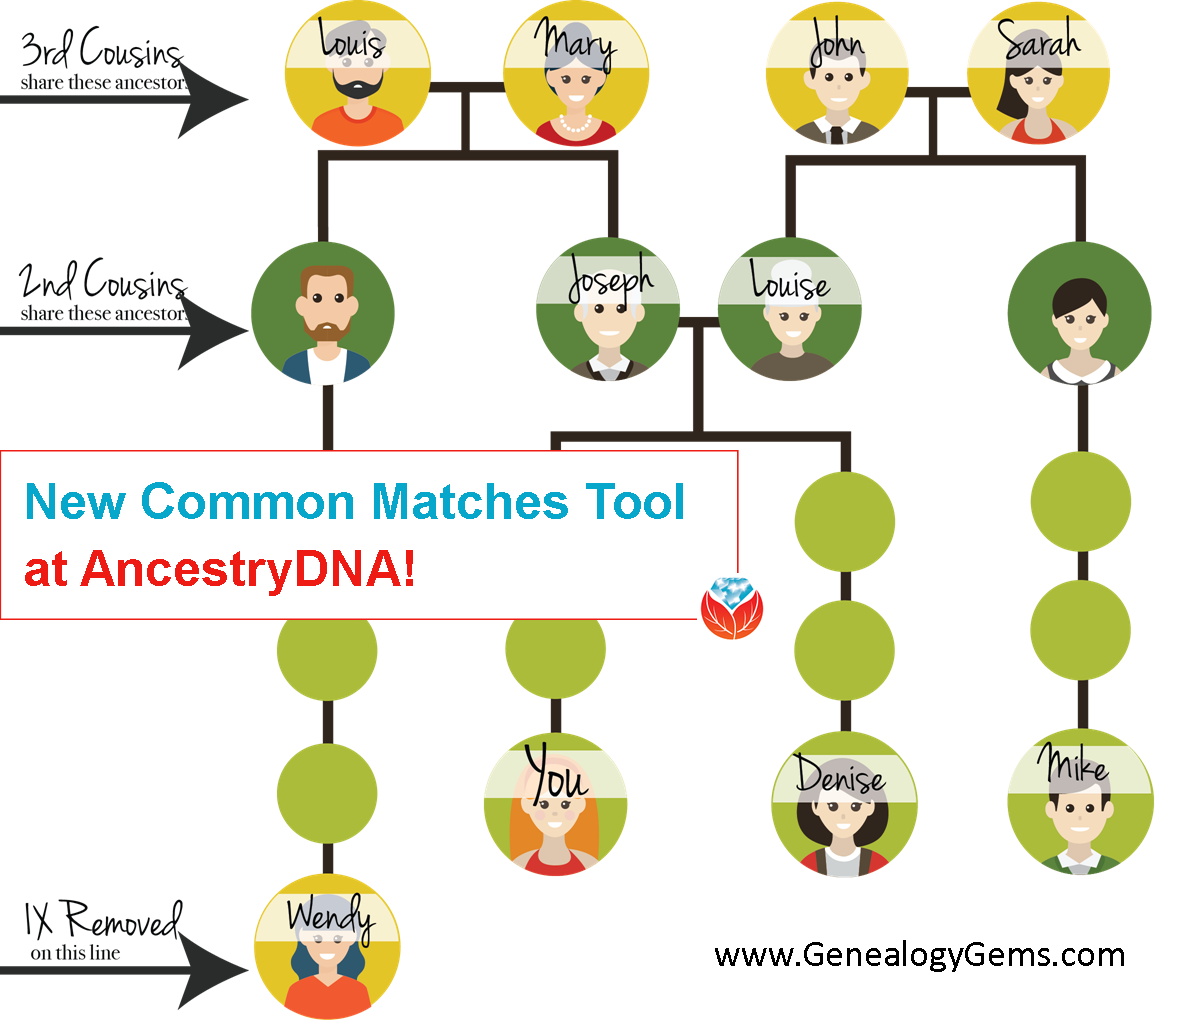 AncestryDNA common matches tool